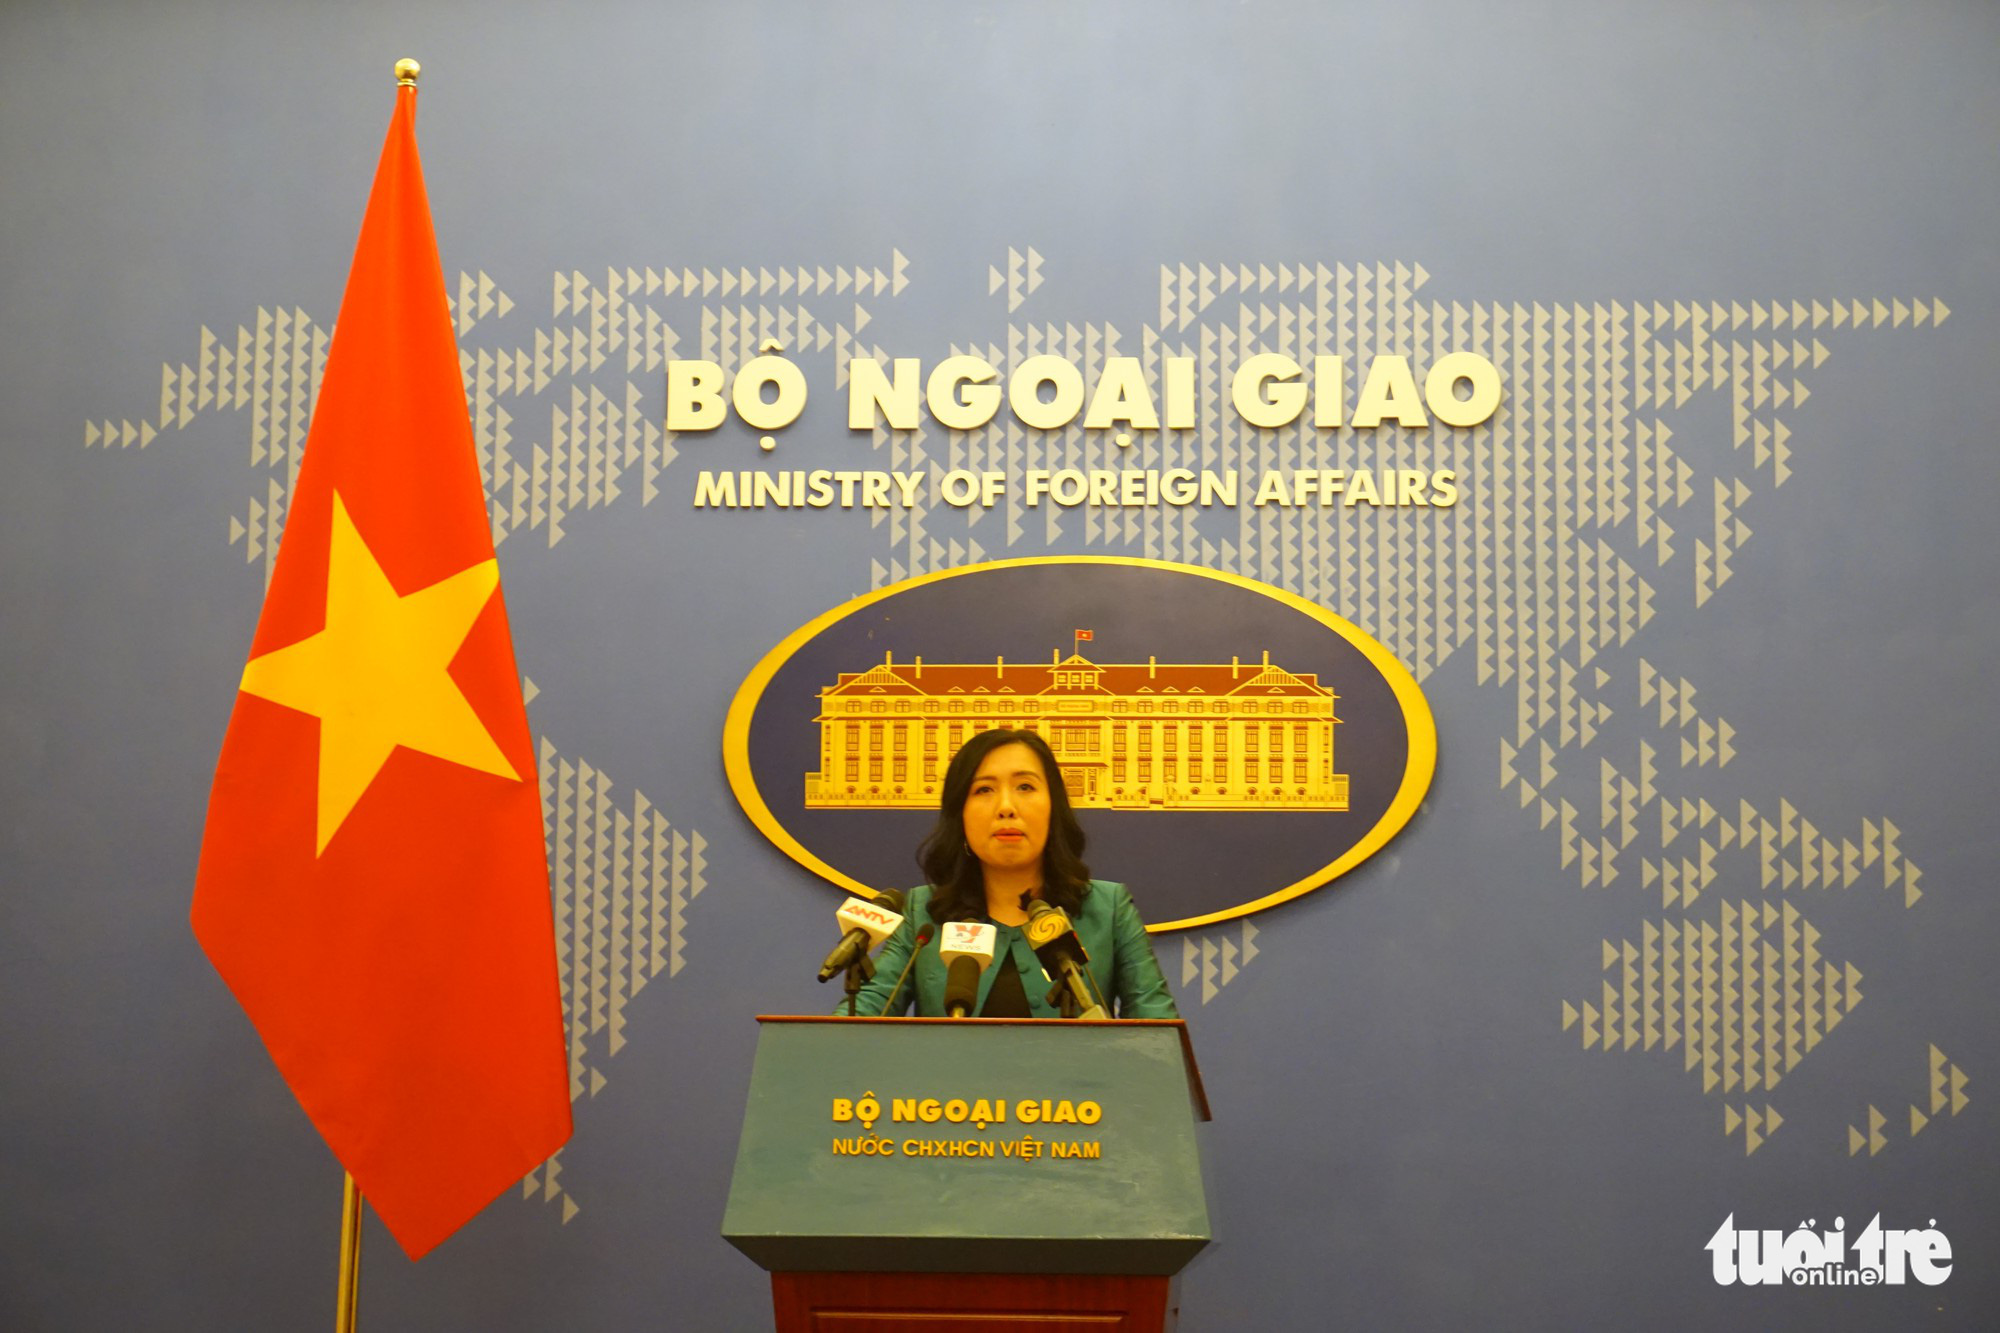 Vietnam welcomes countries' East Vietnam Sea stances in line with international law